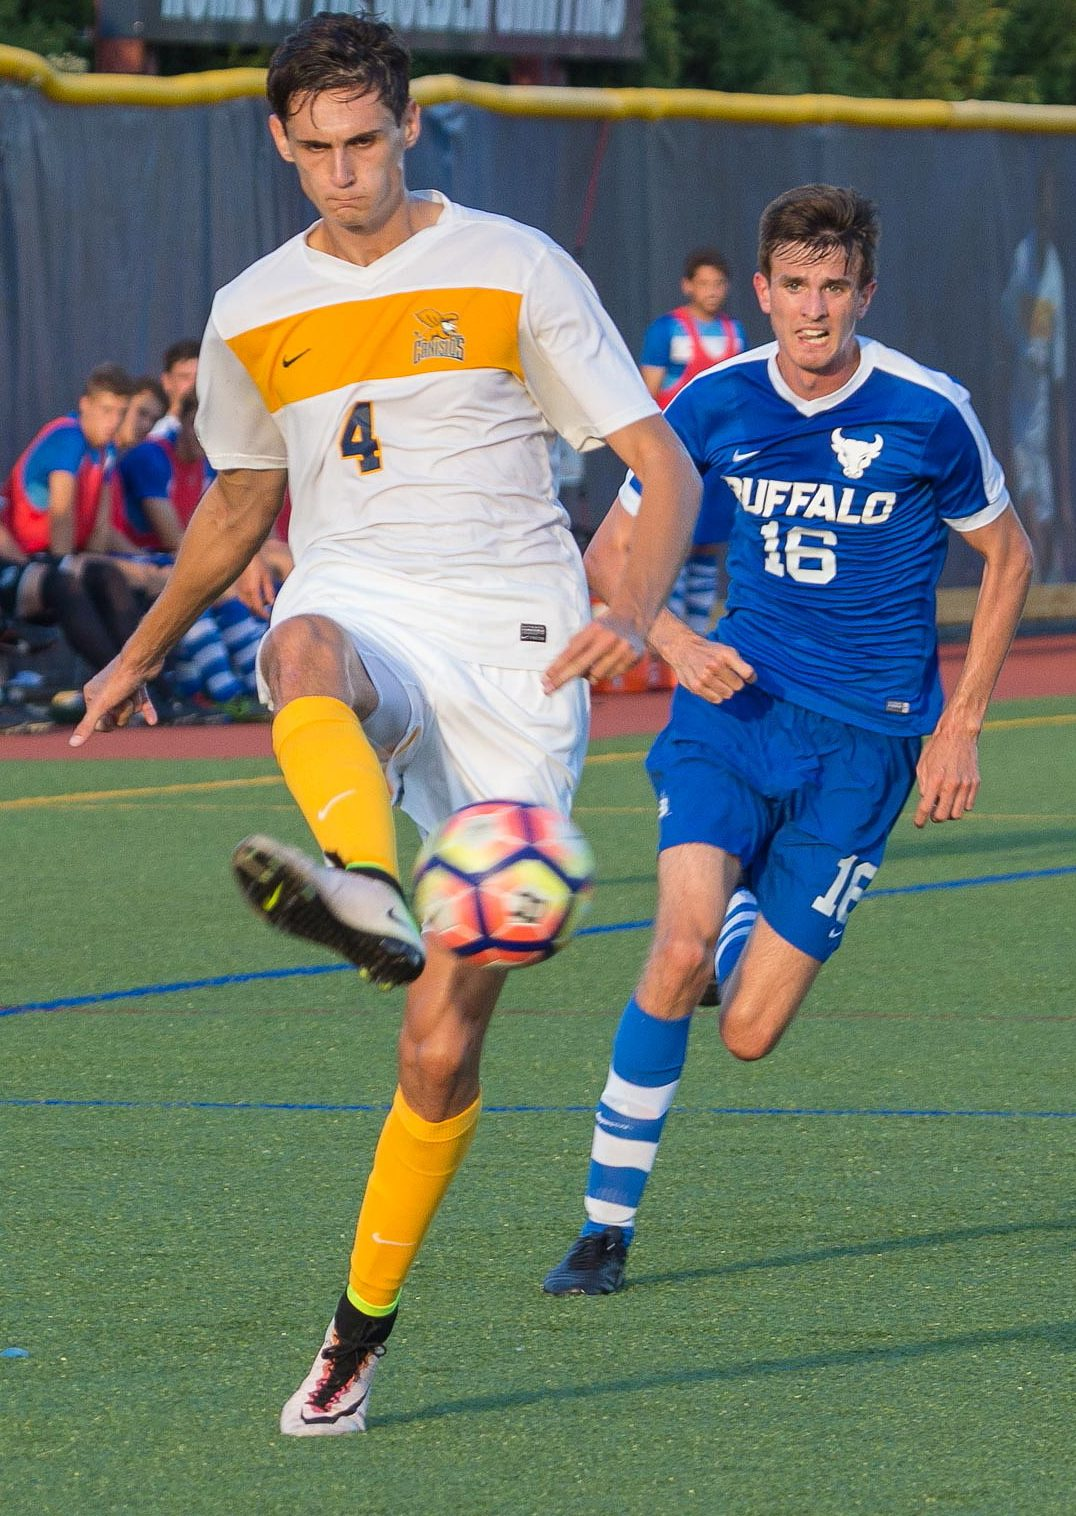 Towering Canisius center back Alex Grattarola will thrive in the air next to Teupen. (Don Nieman/Special to The News)